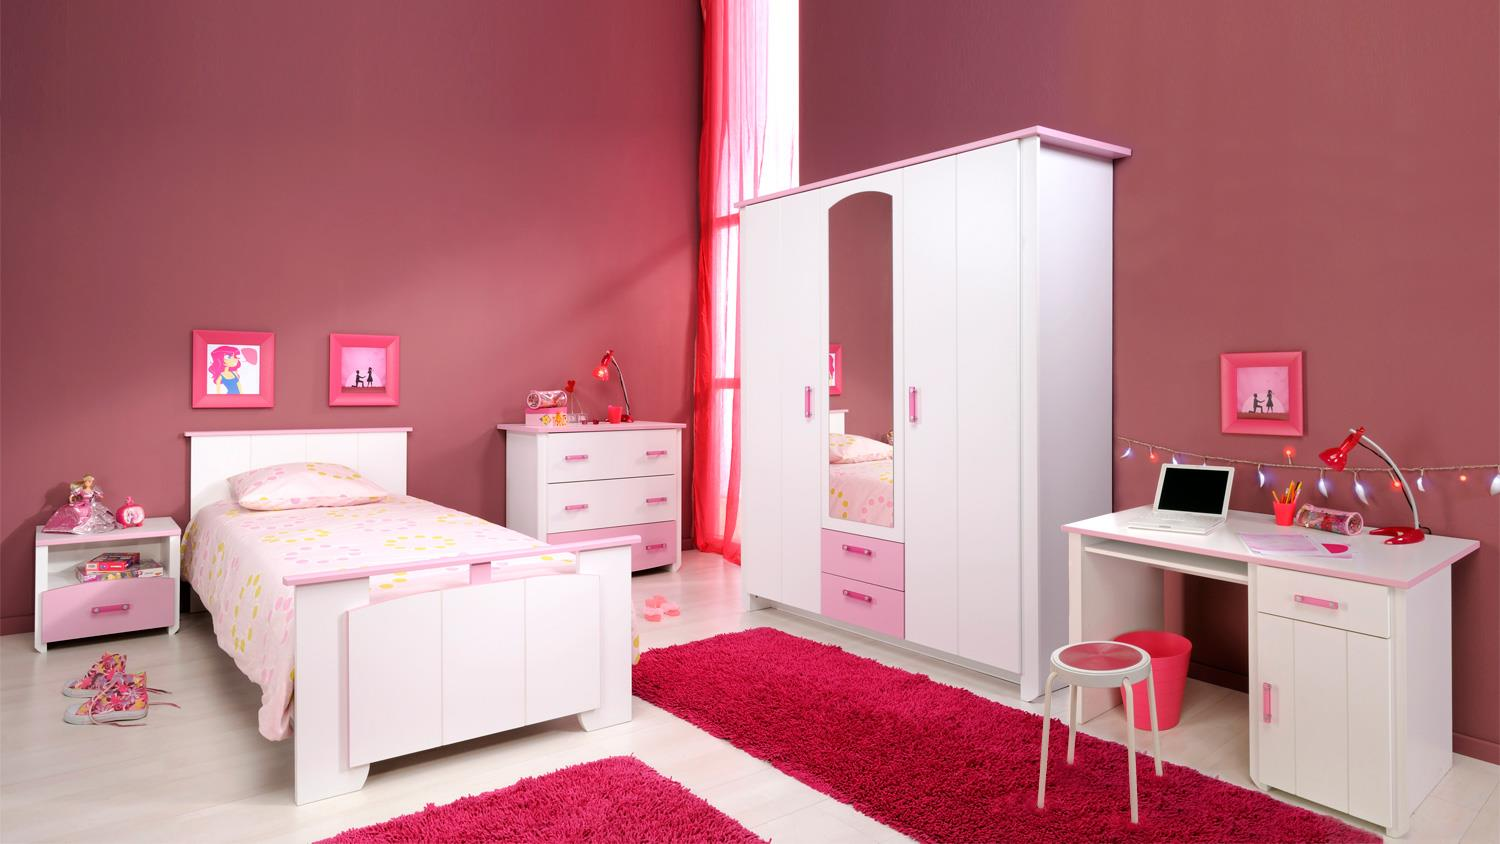 kinderzimmer set beauty 13 wei rosa 5 teilig mit spiegel. Black Bedroom Furniture Sets. Home Design Ideas